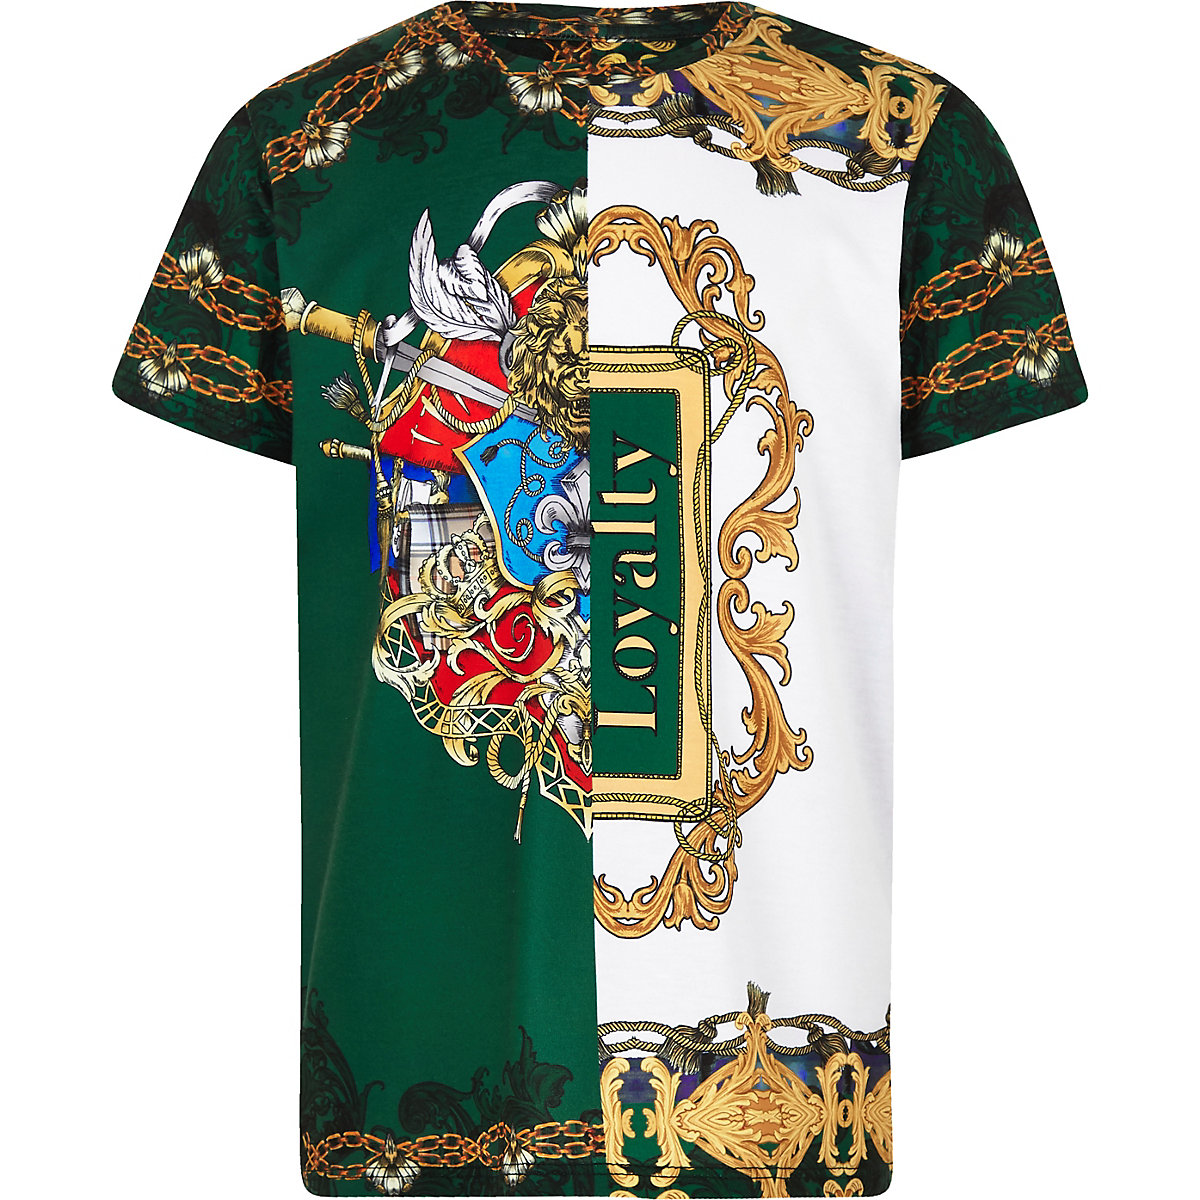 Boys green baroque print T-shirt